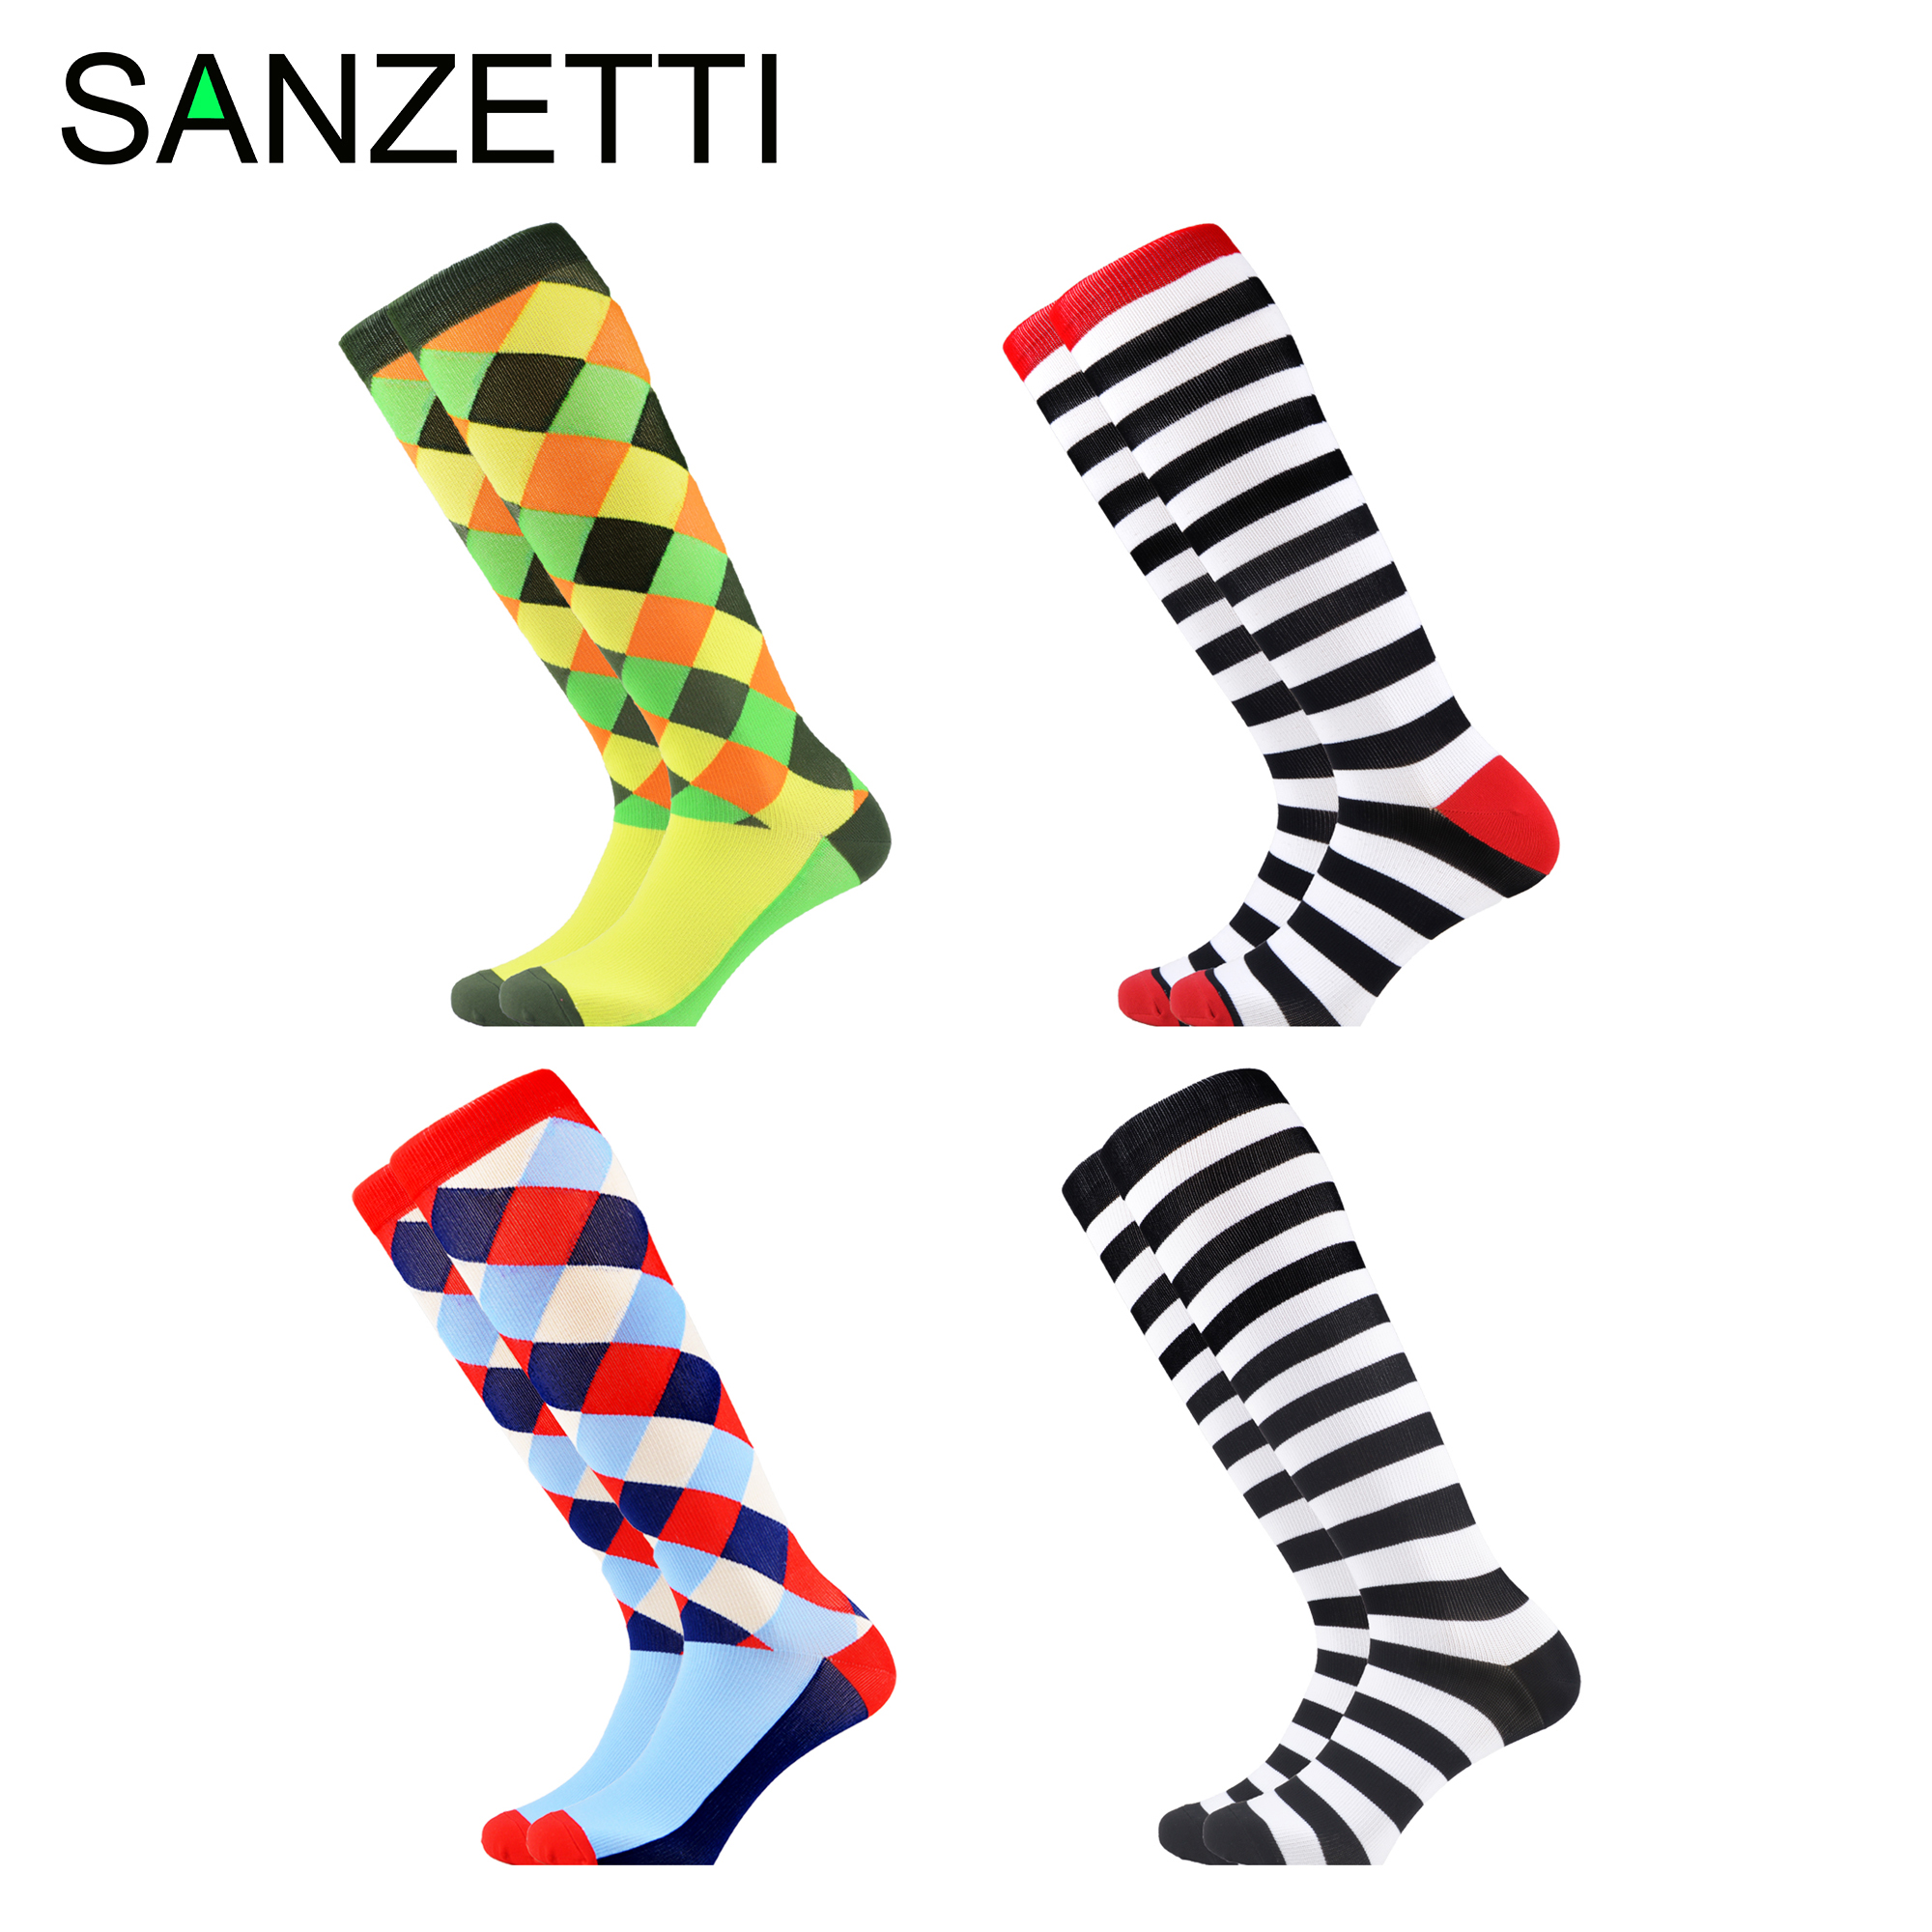 SANZETTI 4 Pairs/Lot Women Hayyp SocksStriped Combed Cotton Compression Socks Below Knee Plaid Anti-Fatigue Long Colorful Socks